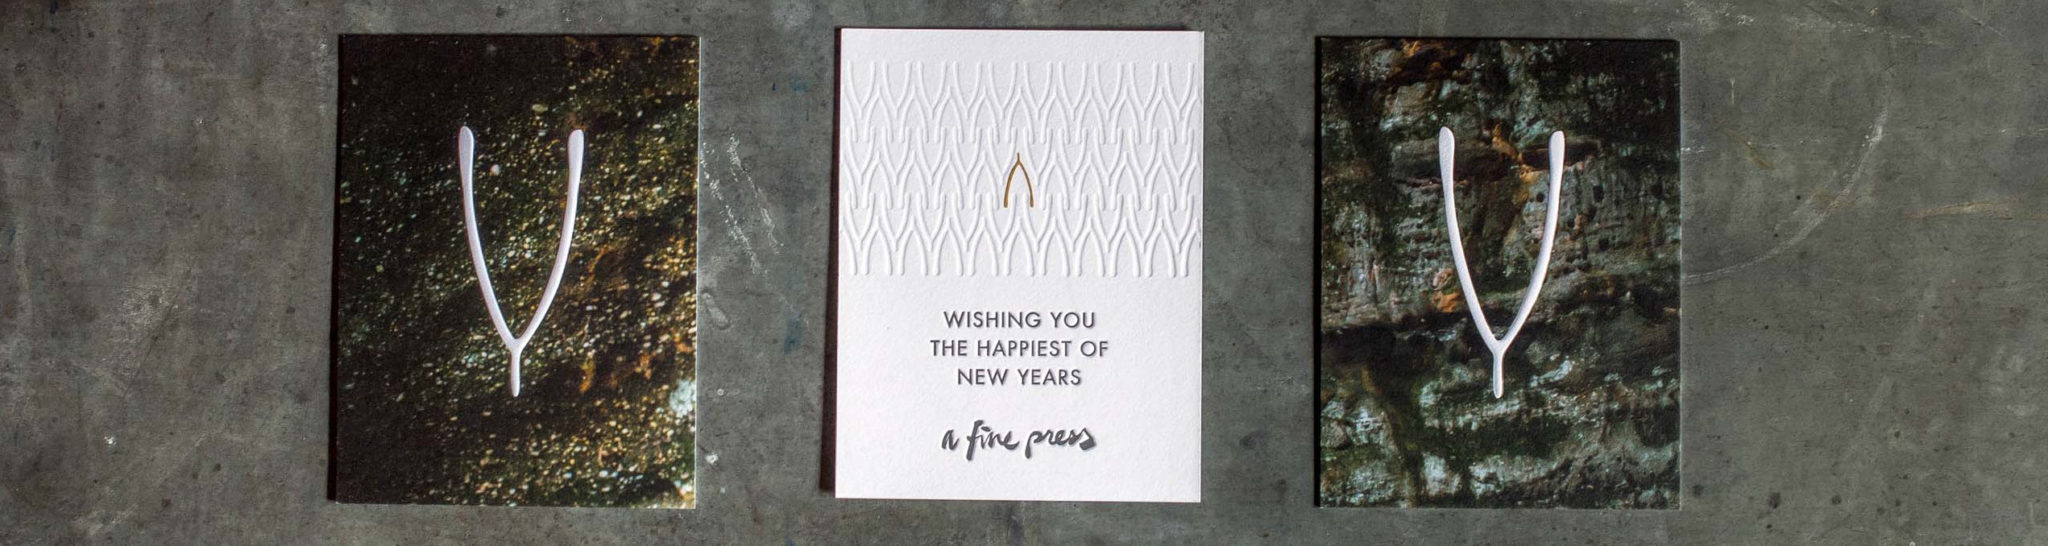 Social Stationery - A Fine Press - Matthew Wengerd